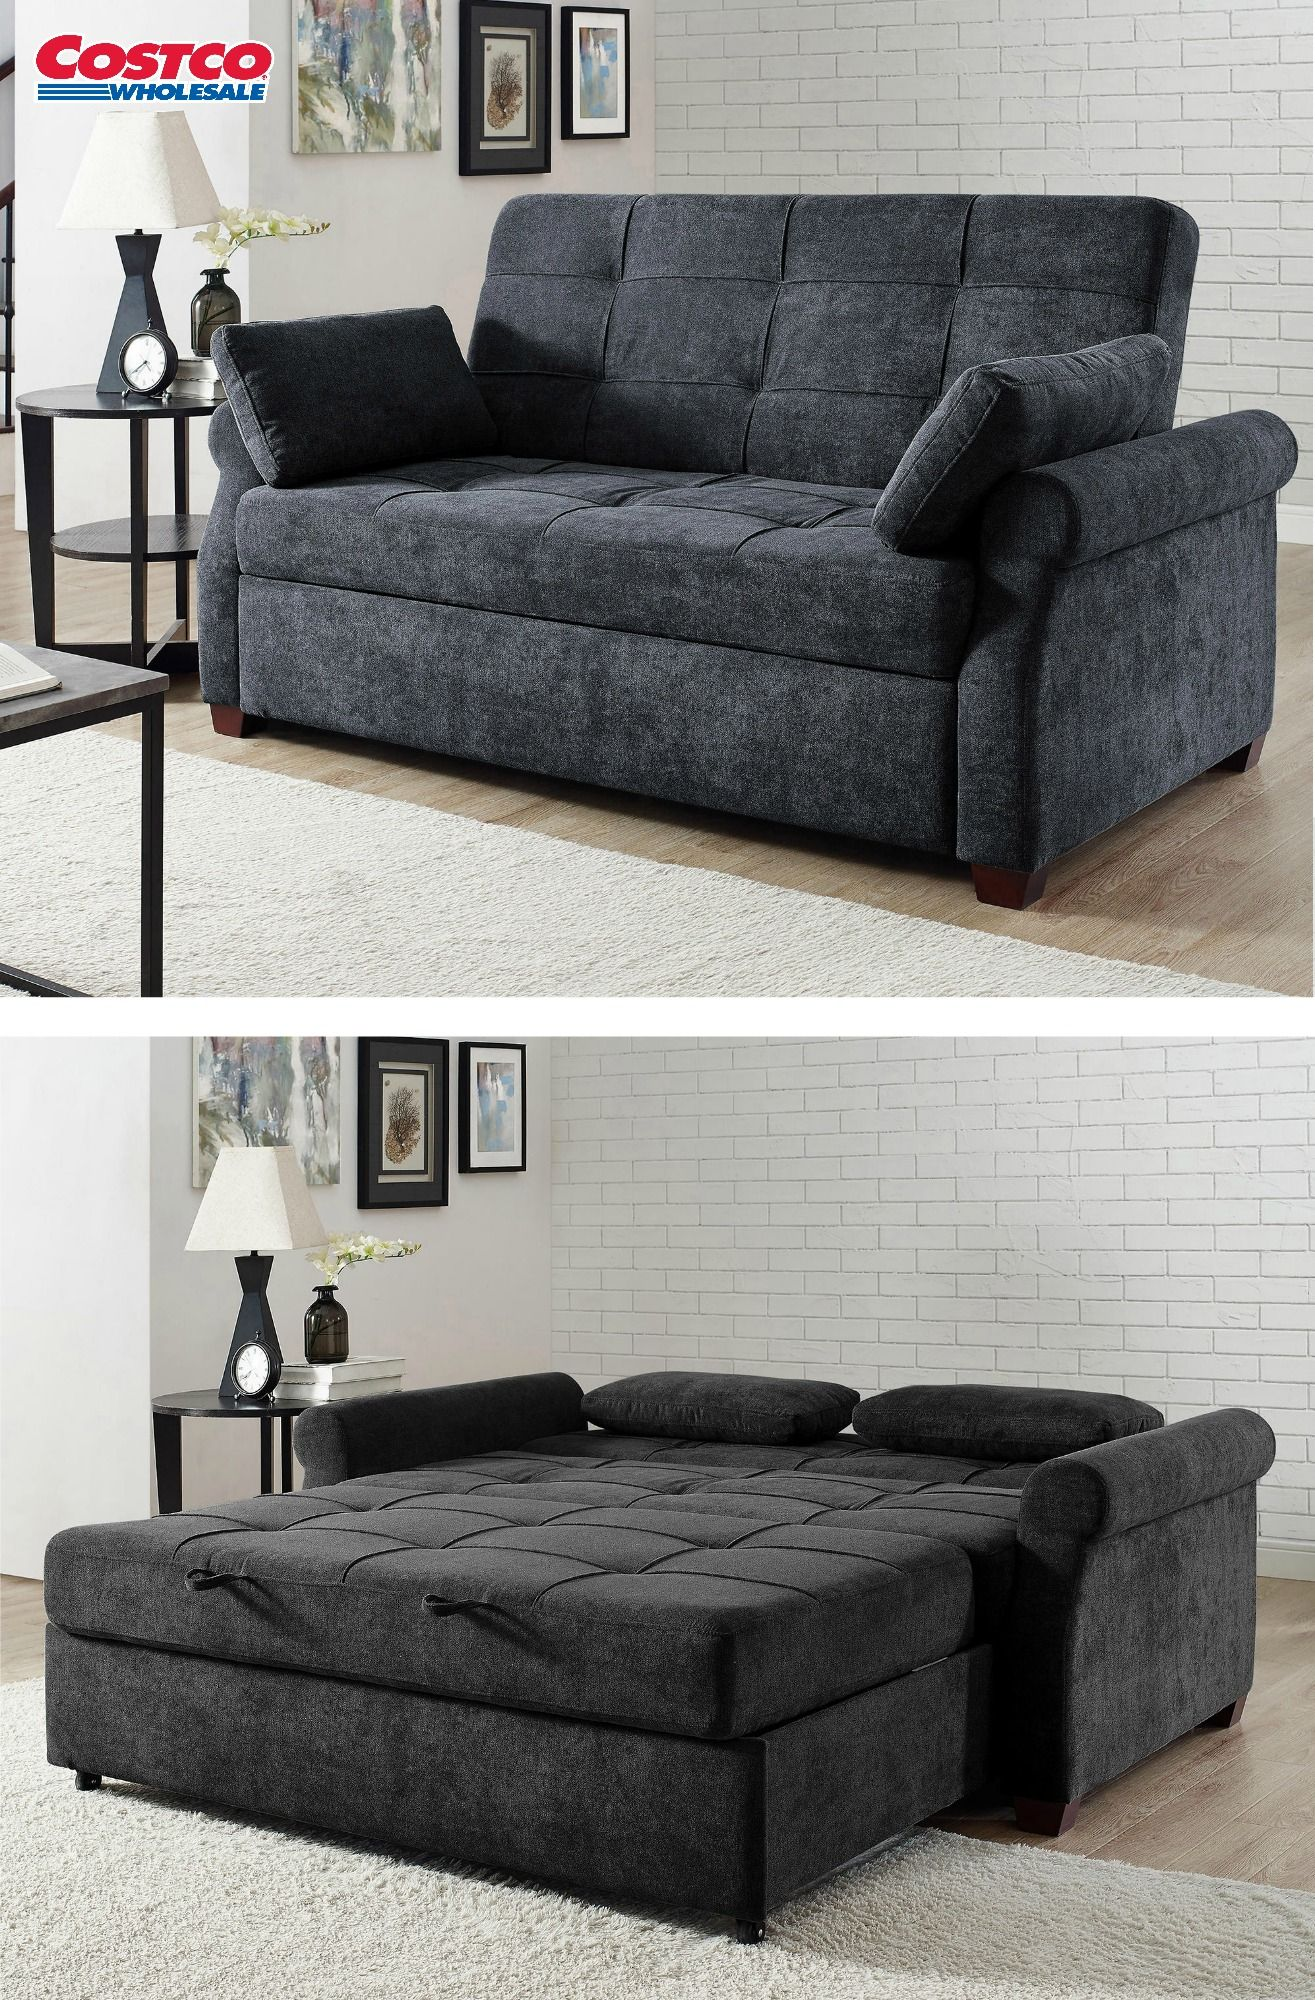 Enjoy A Contemporary Look That Adds Comfort And Style To Your Home With The Bryson Fabric Queen Sleeper Sofa This So Mattress Furniture Sleeper Sofa Furniture